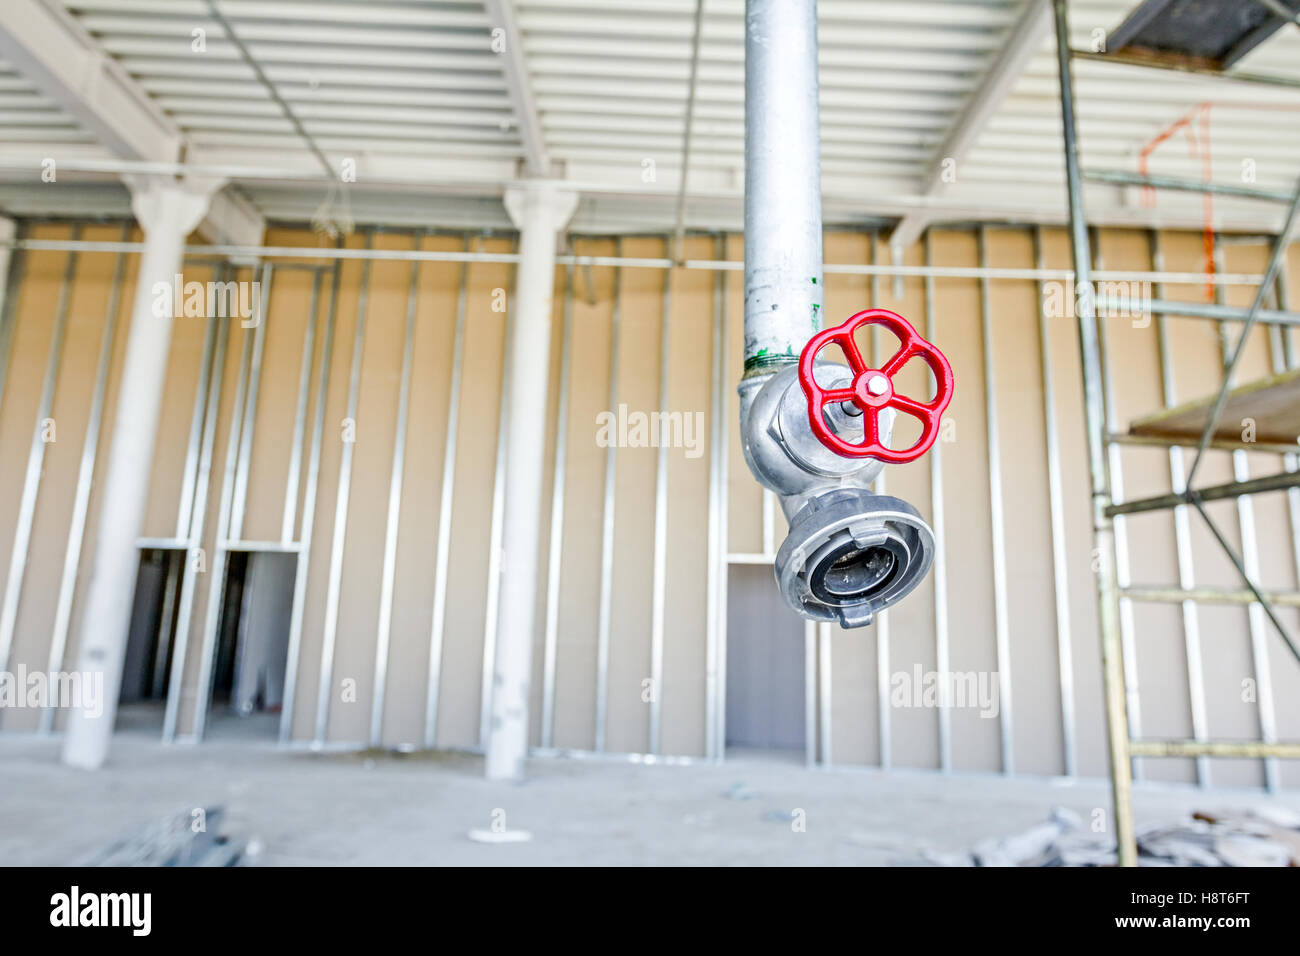 Red faucet from firefighter galvanized steel pipeline is hanging from ceiling. - Stock Image